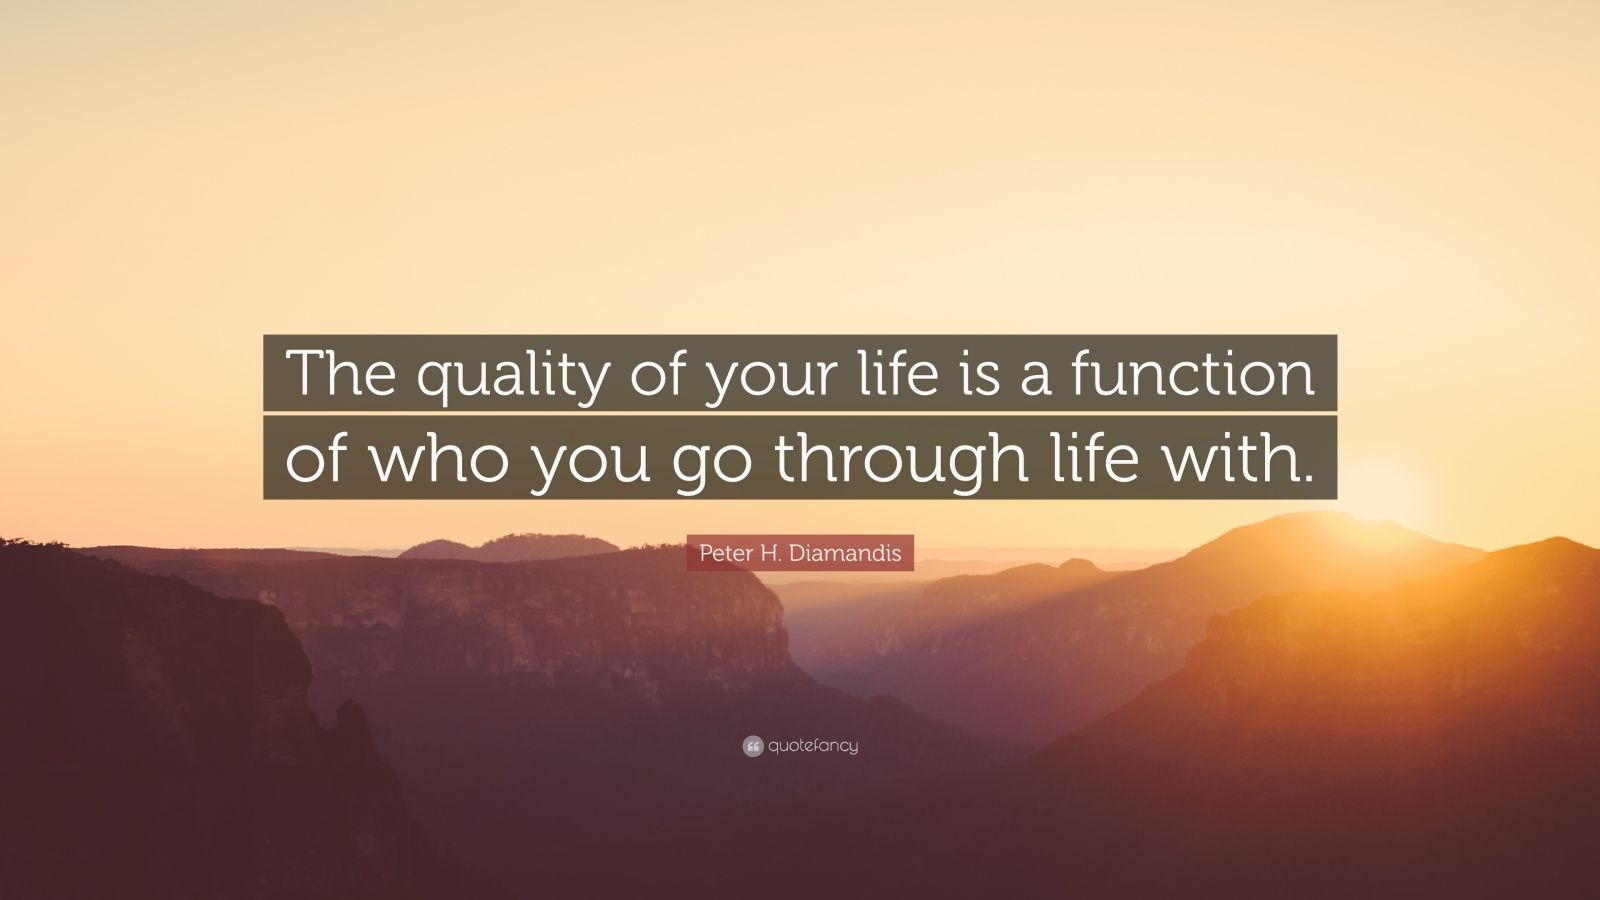 """Peter H. Diamandis Quote: """"The quality of your life is a function of who you go through life with."""""""